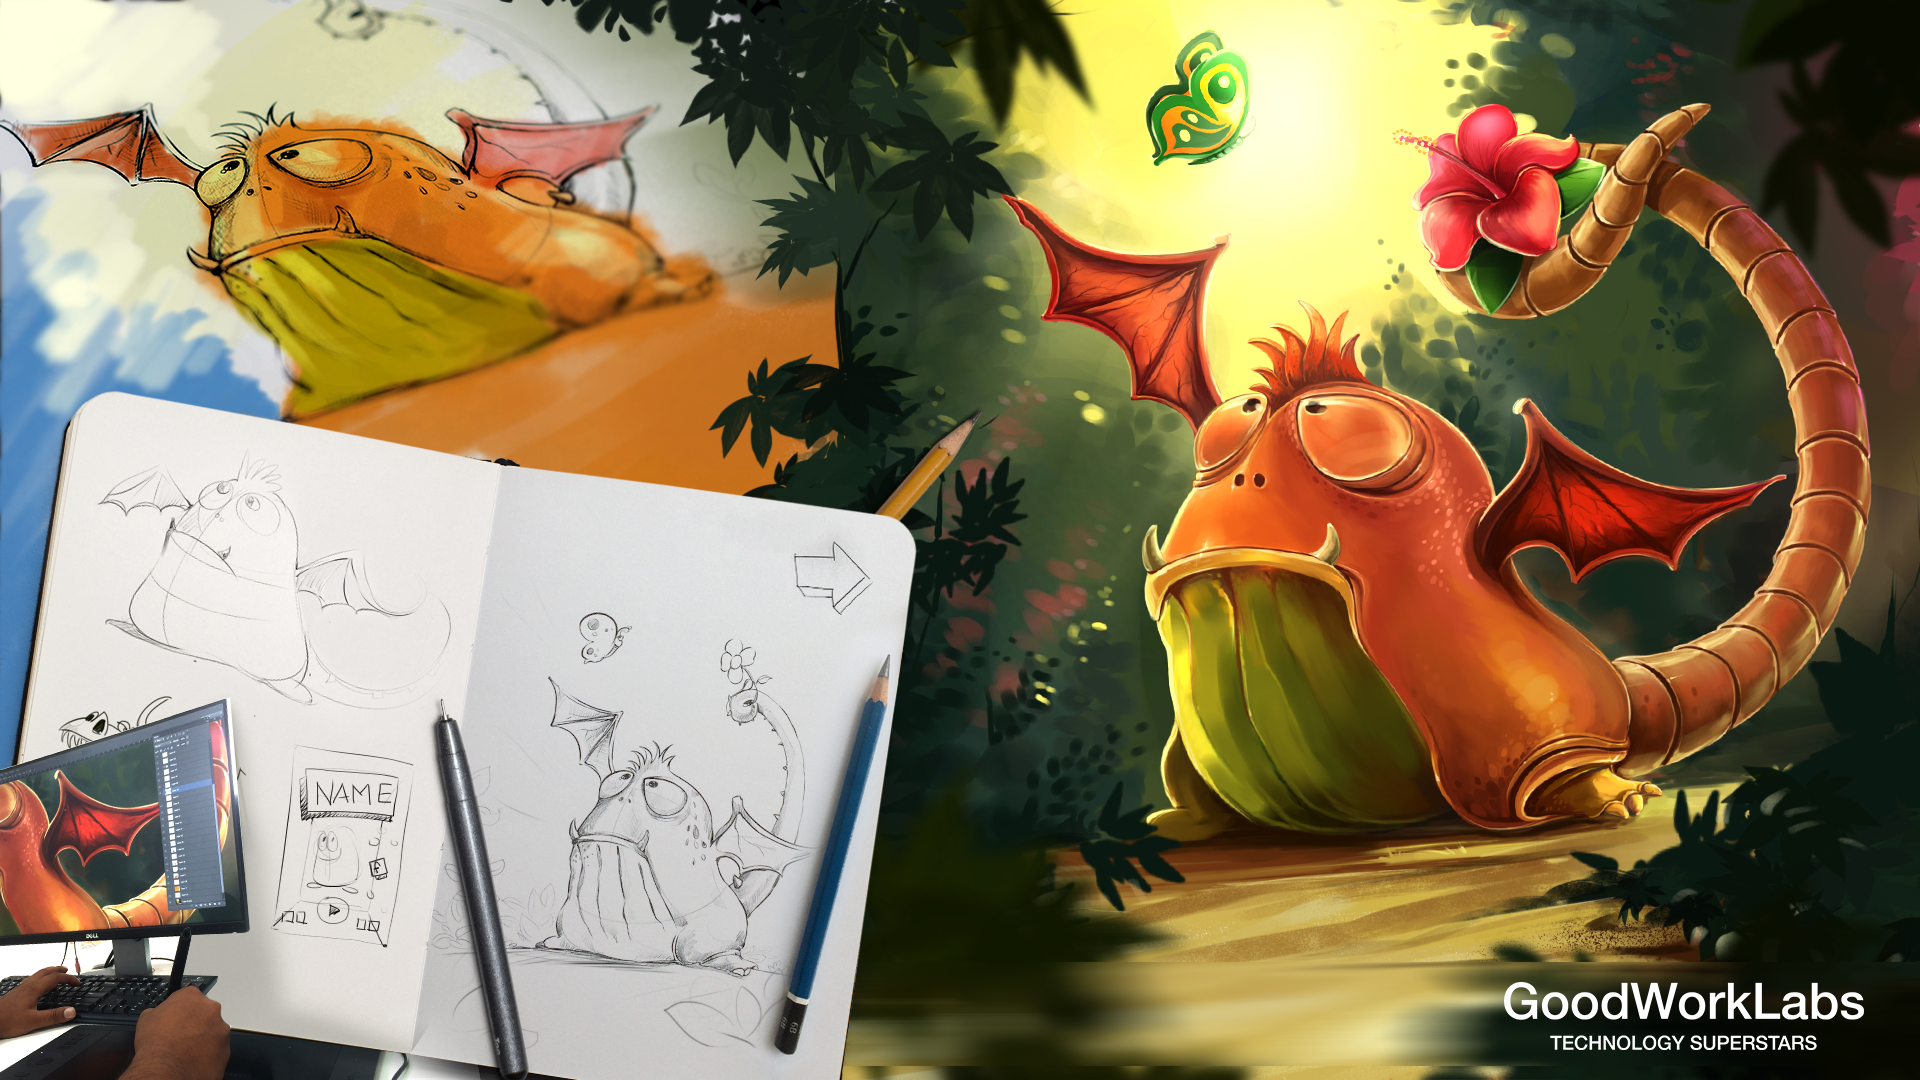 goodworklabs-game-art-outsourcing-company-process